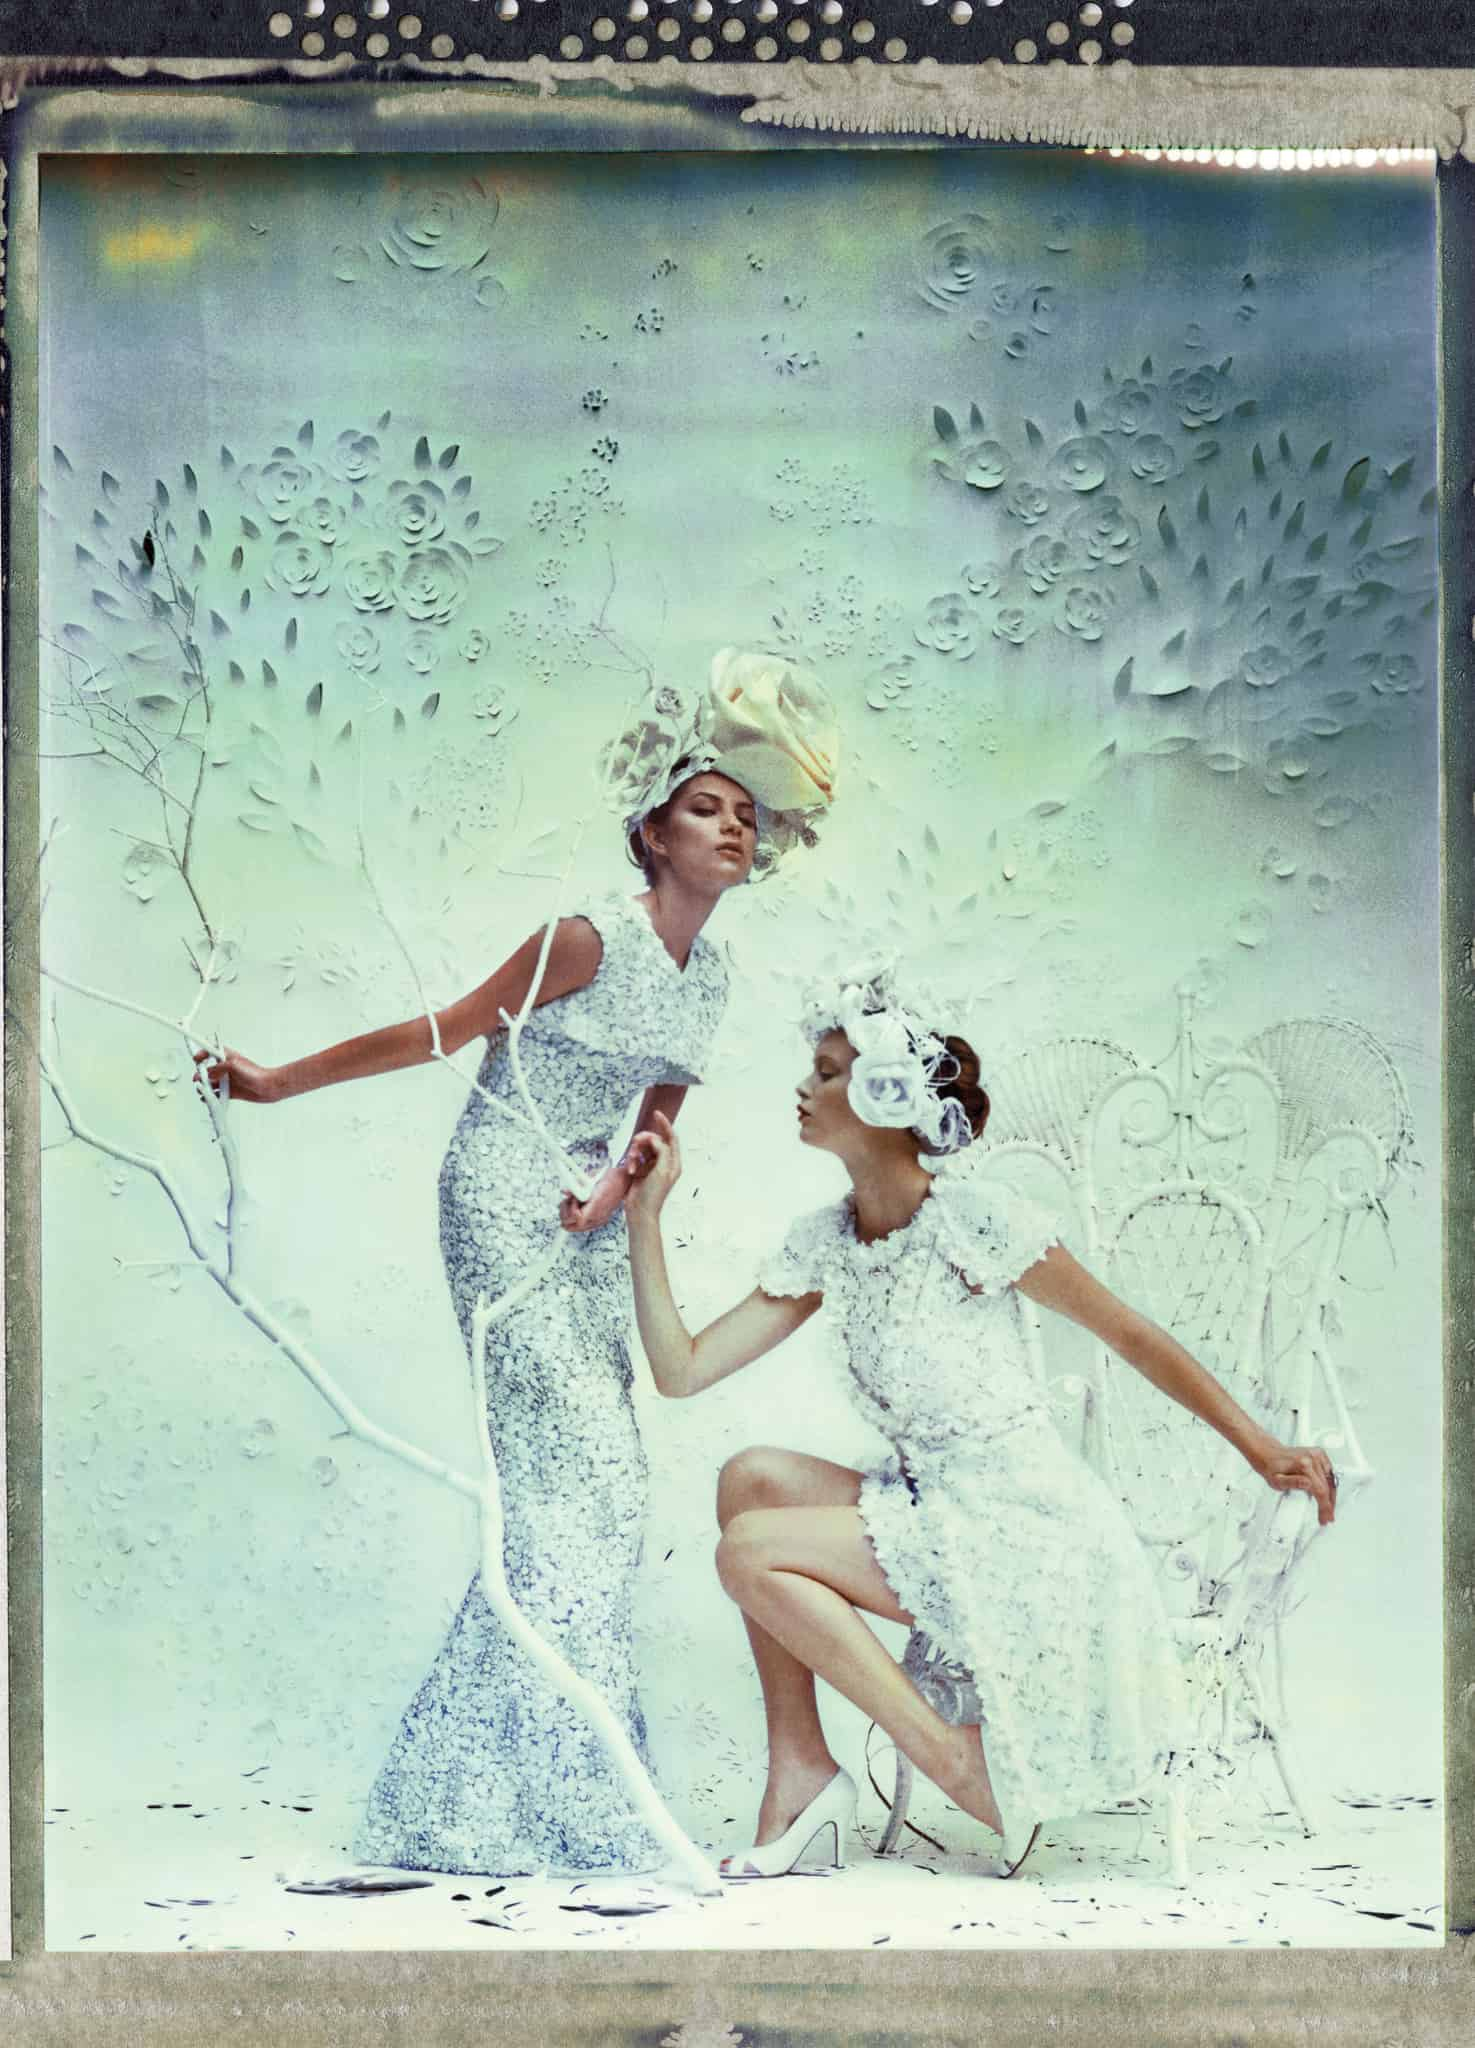 Fine art color photography of two fashion models wearing haute couture CHANEL by Karl Lagerfeld.